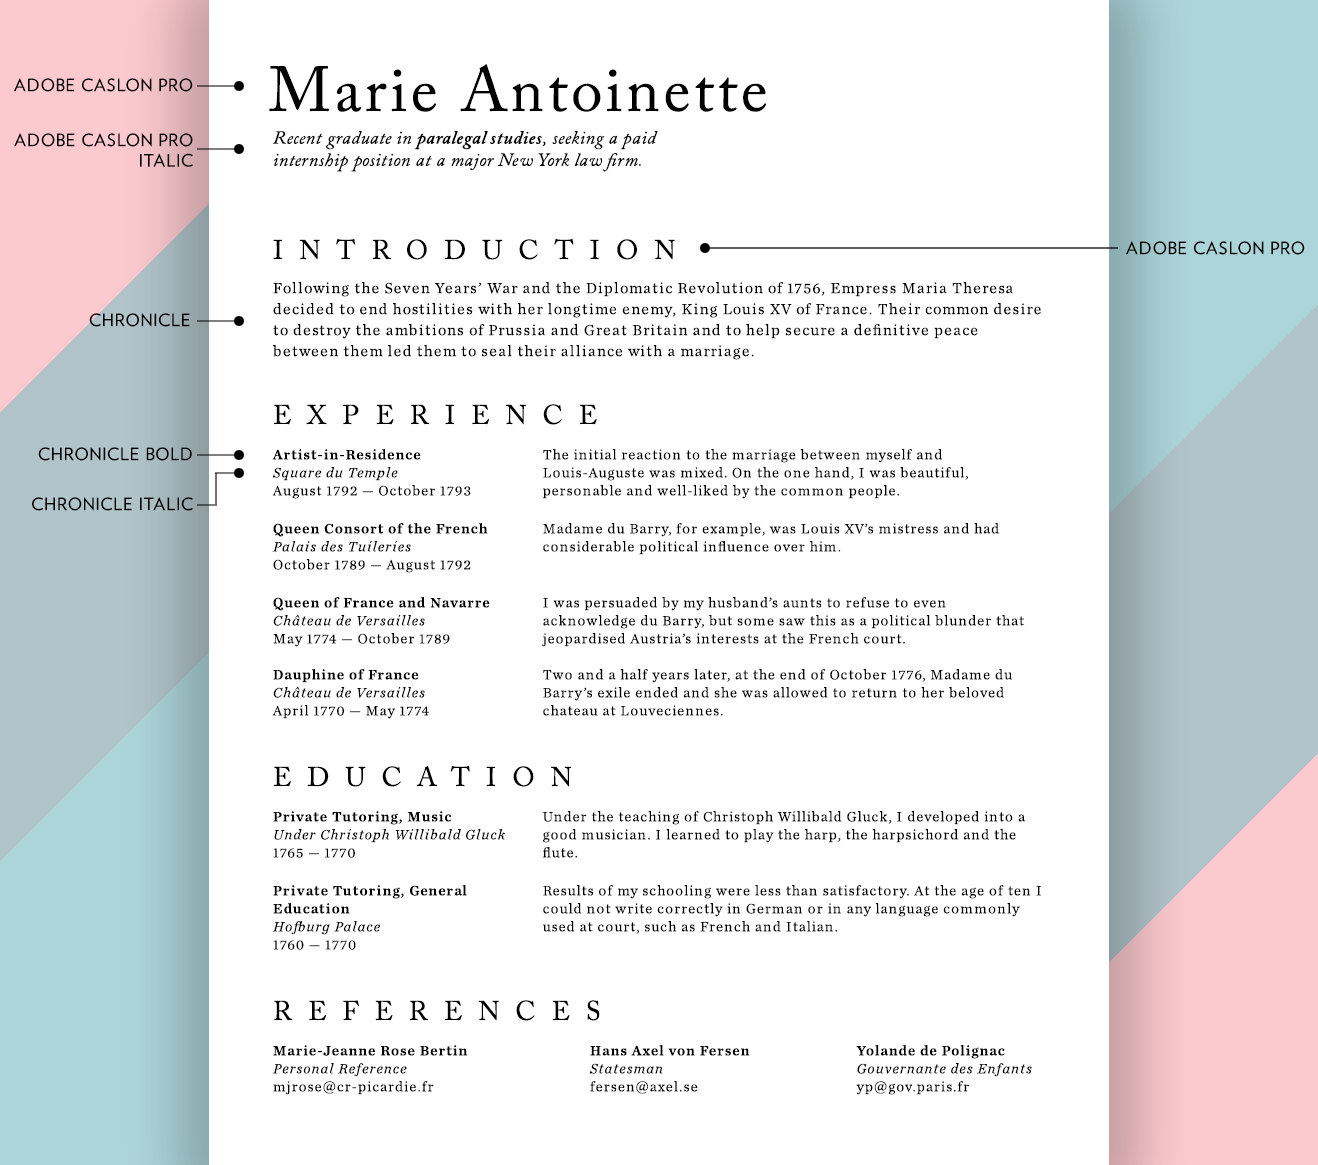 Resume For Apple What Fonts Should I Use On My Rsum  Unionio College Professor Resume Pdf with Objective On A Resume Example Word Geometric Sansserif Fonts Actors Resumes Pdf